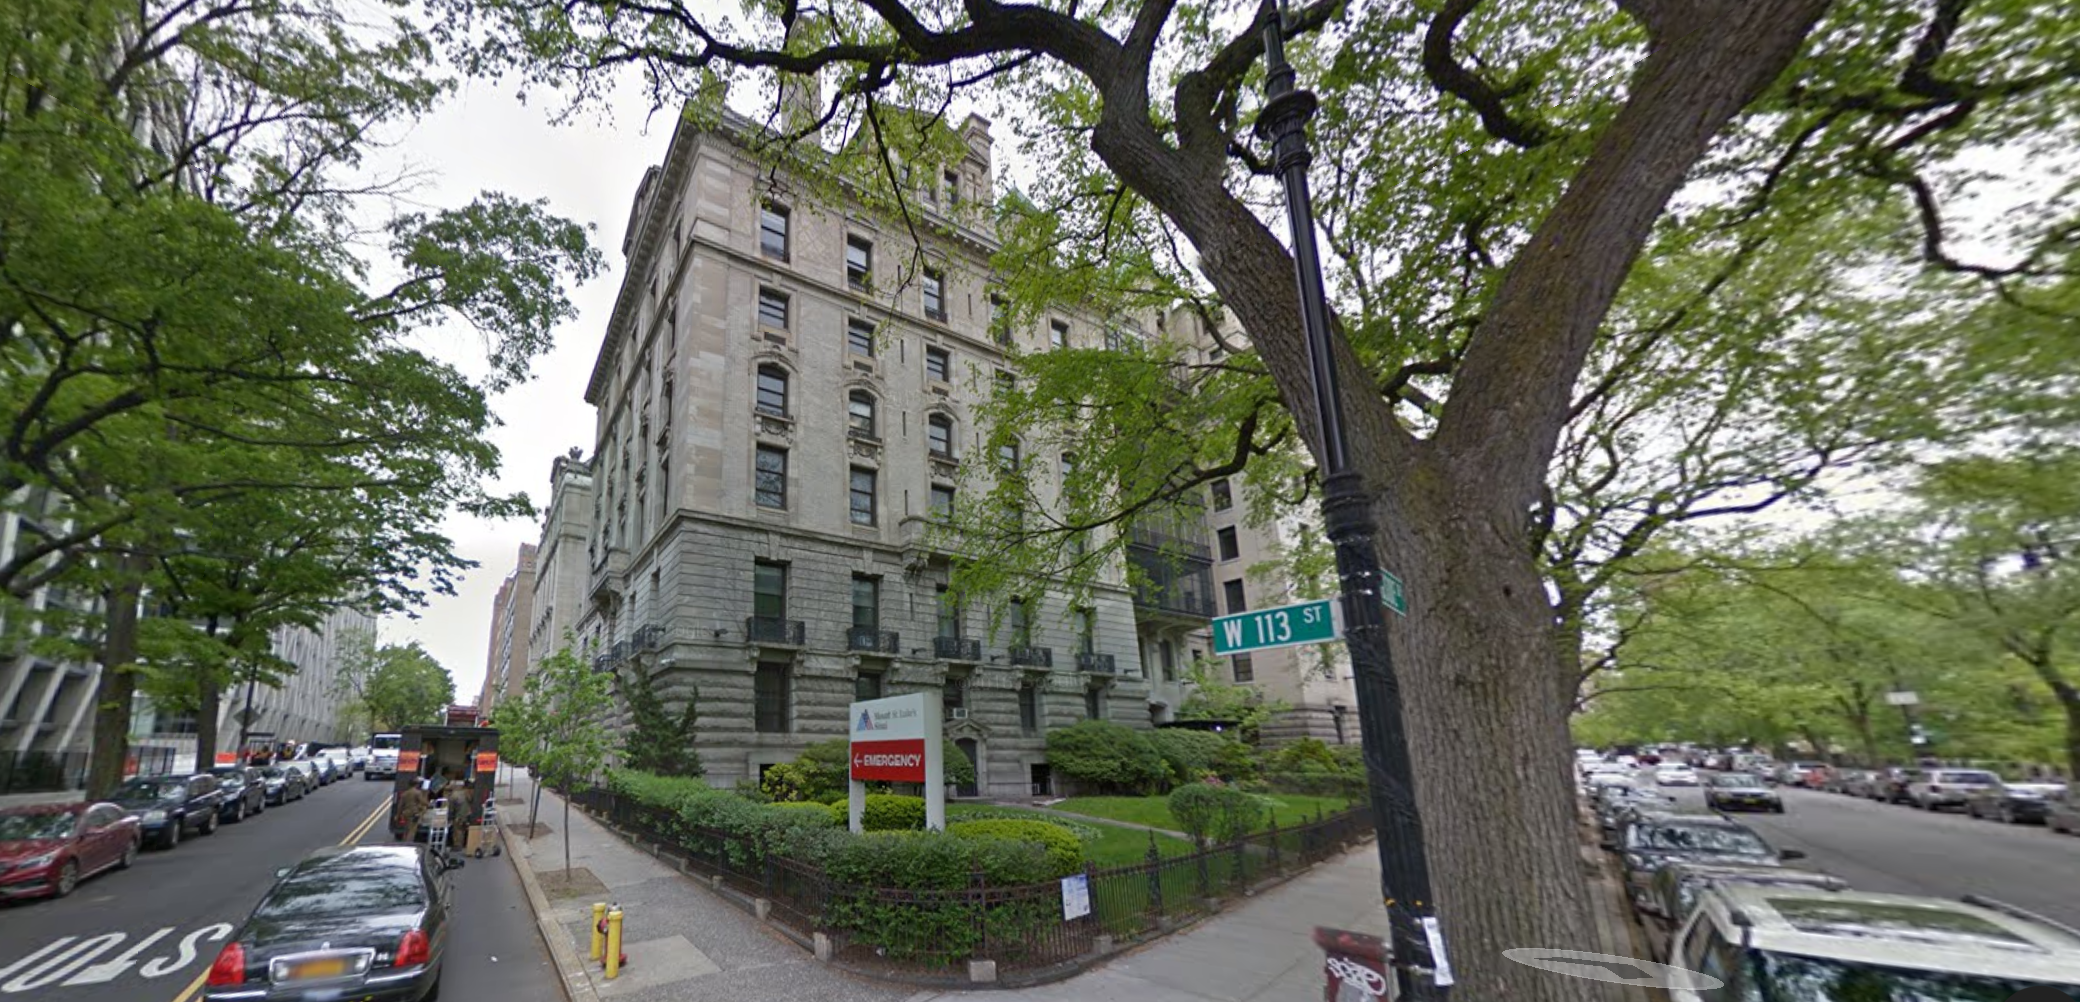 401 West 113th Street, image via Google Maps